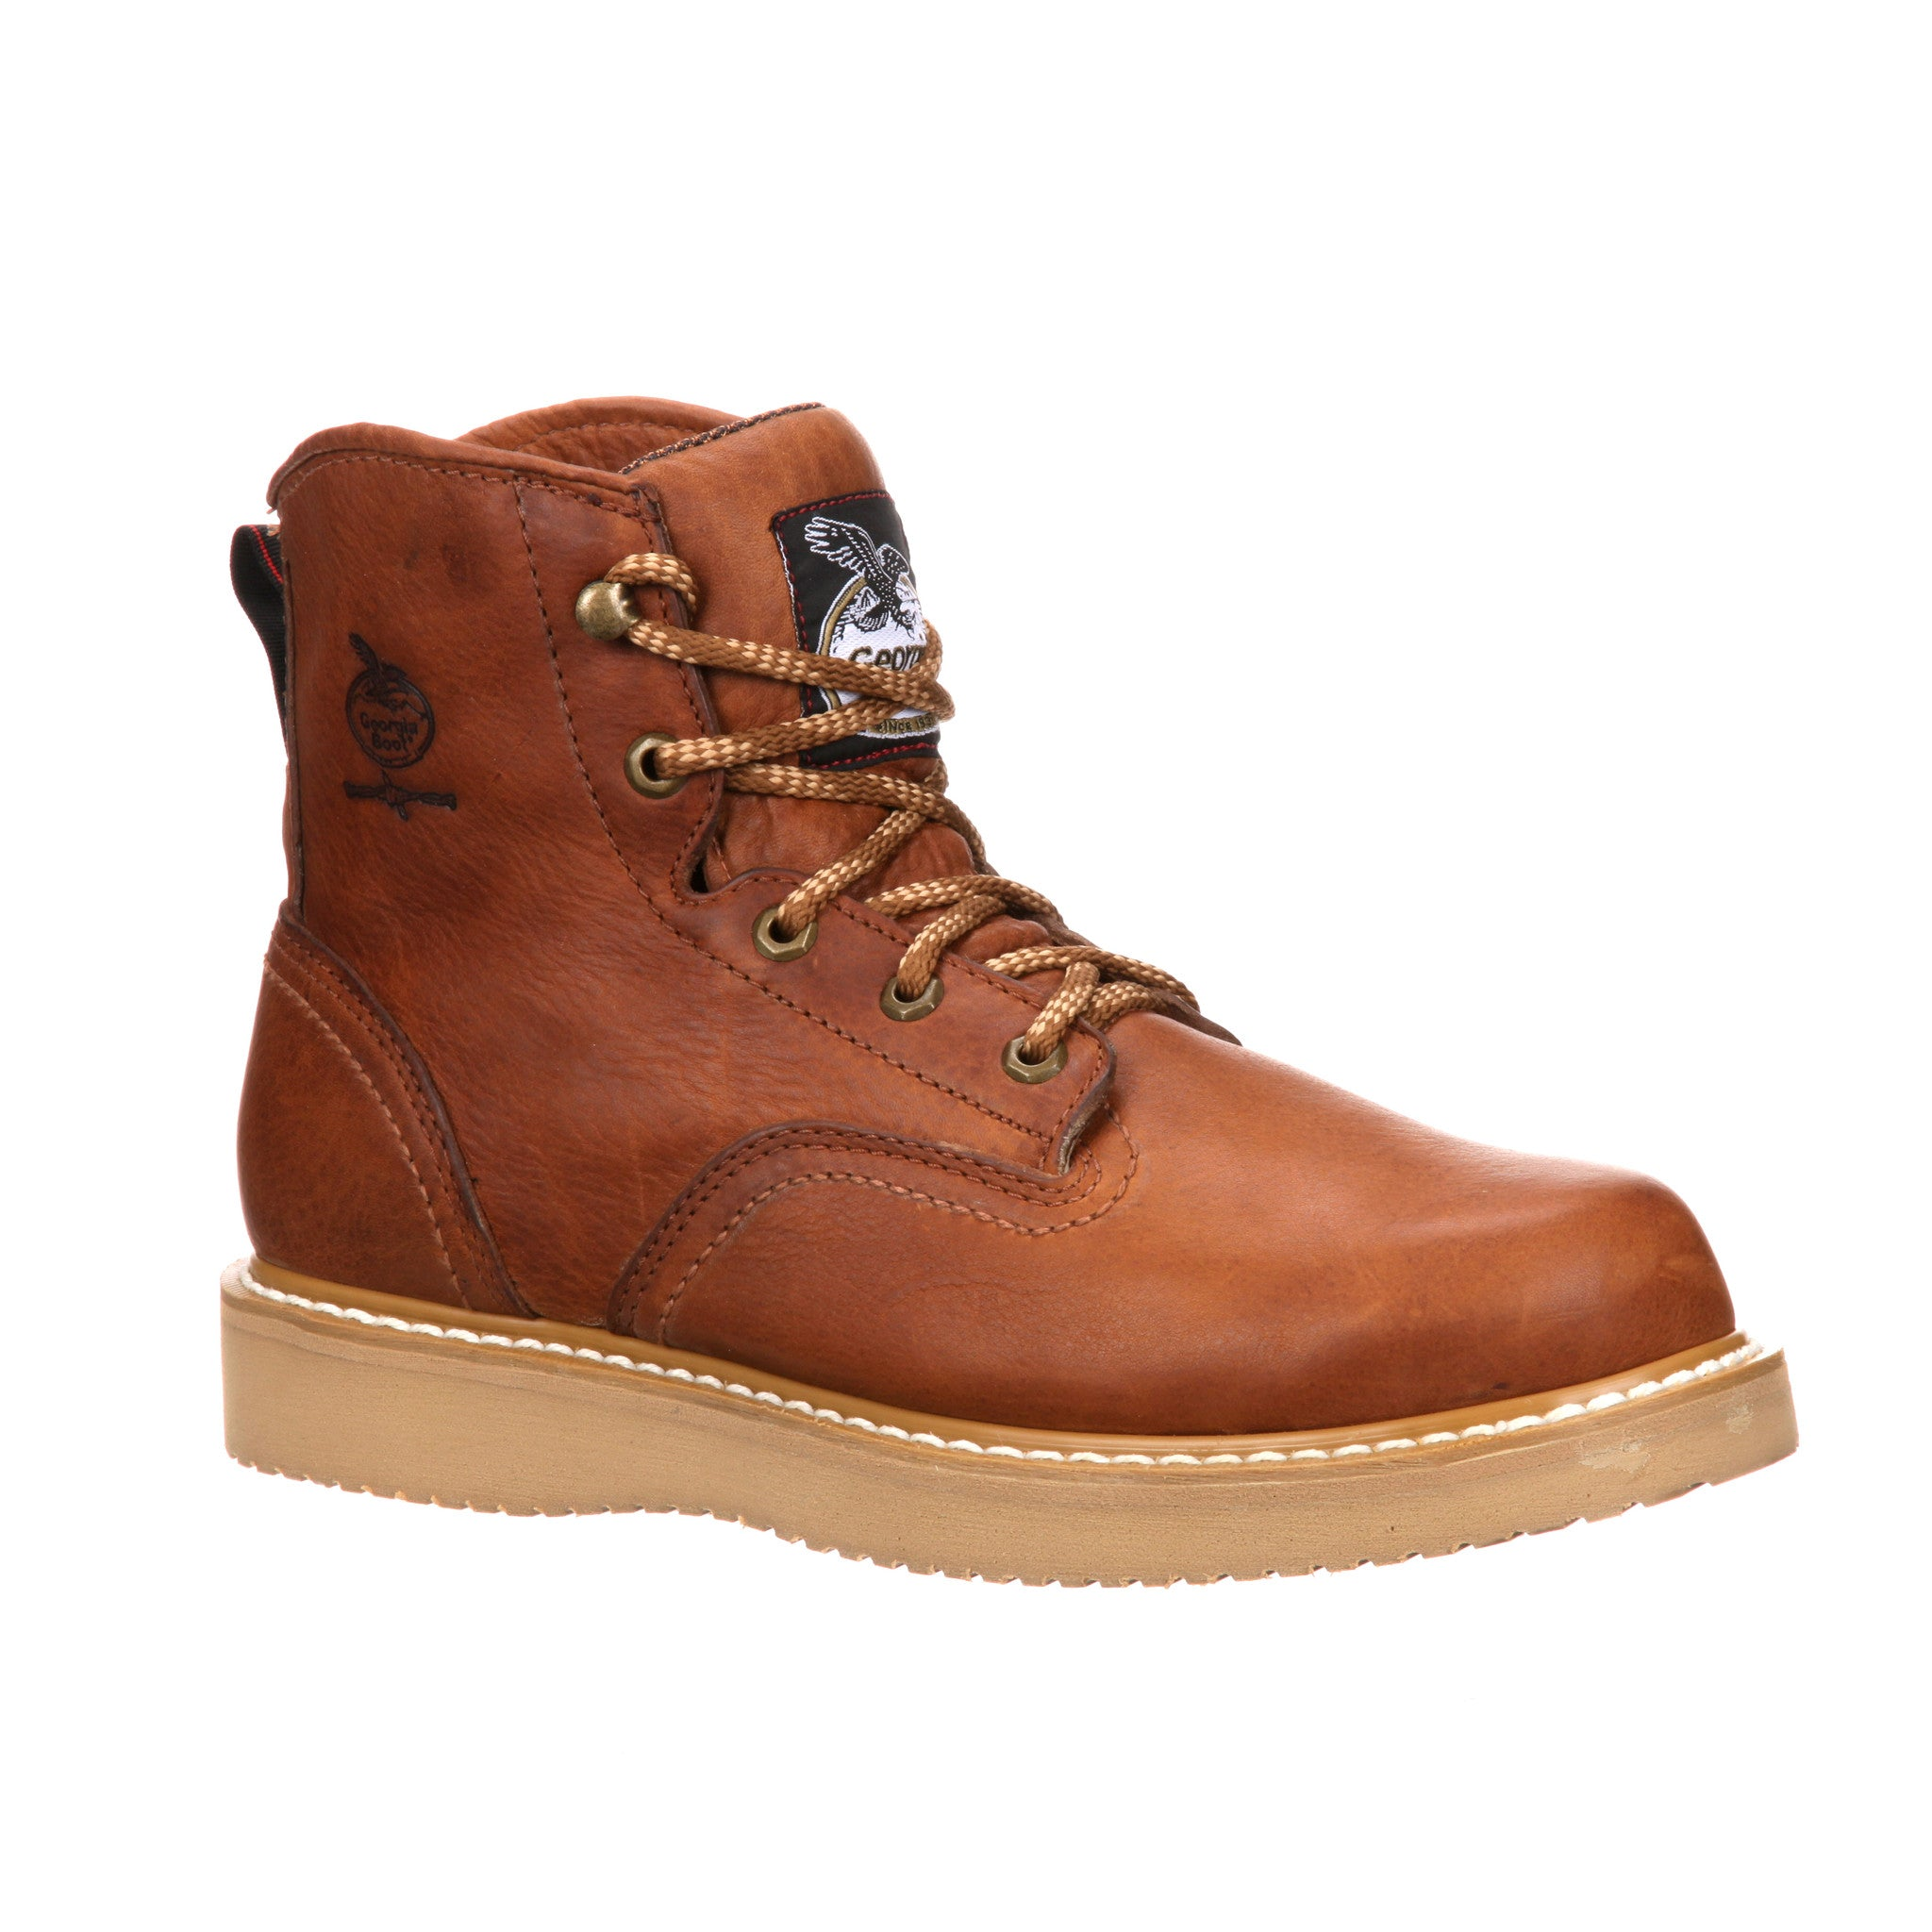 Men's Georgia Wedge Steel Toe Work Boot #G6342